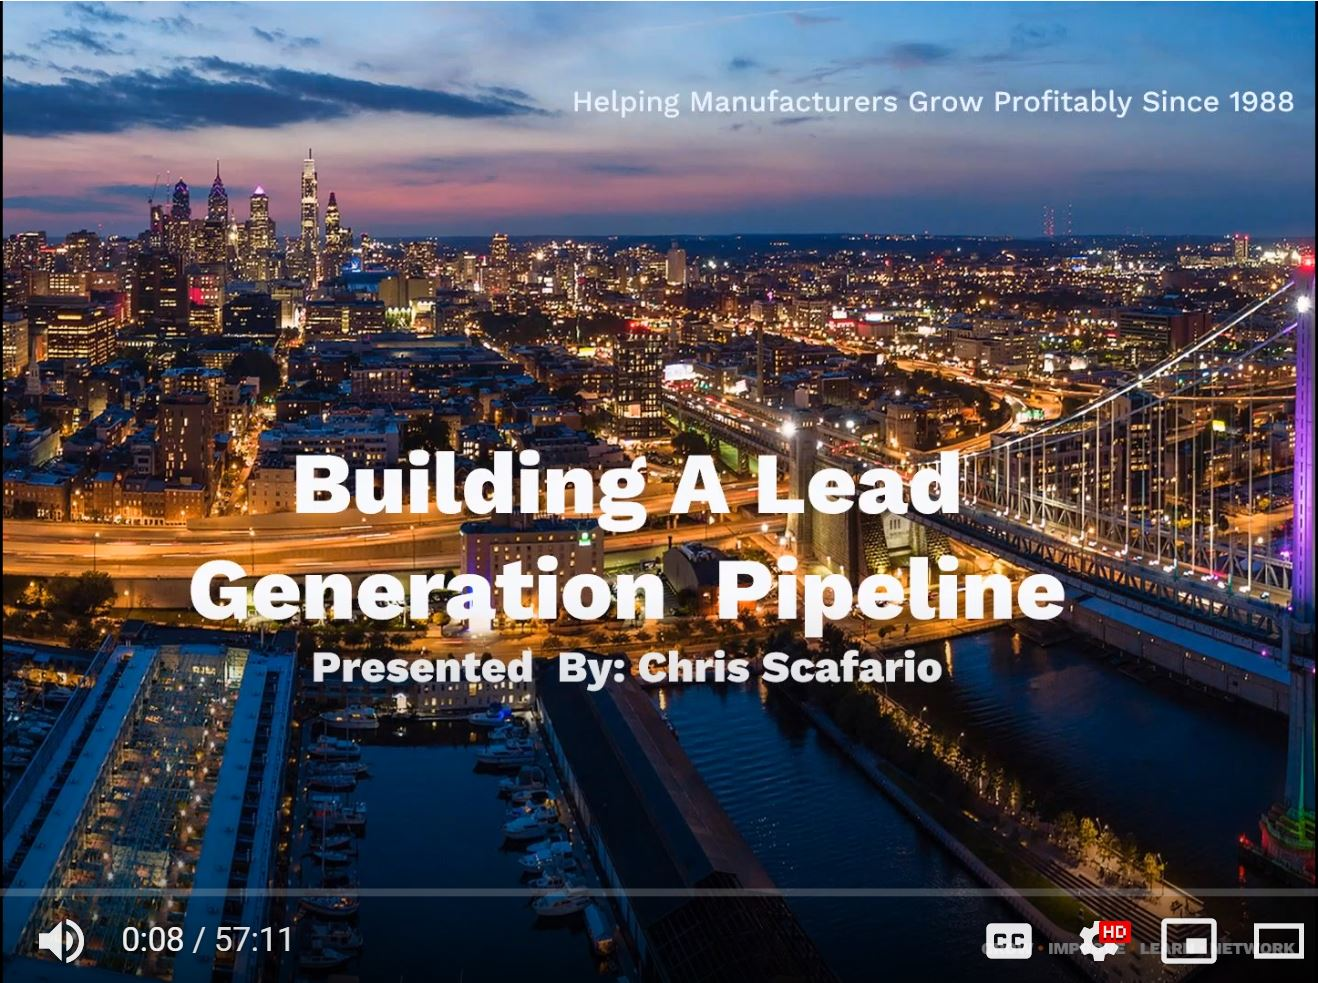 Building a Lead Generation Pipeline